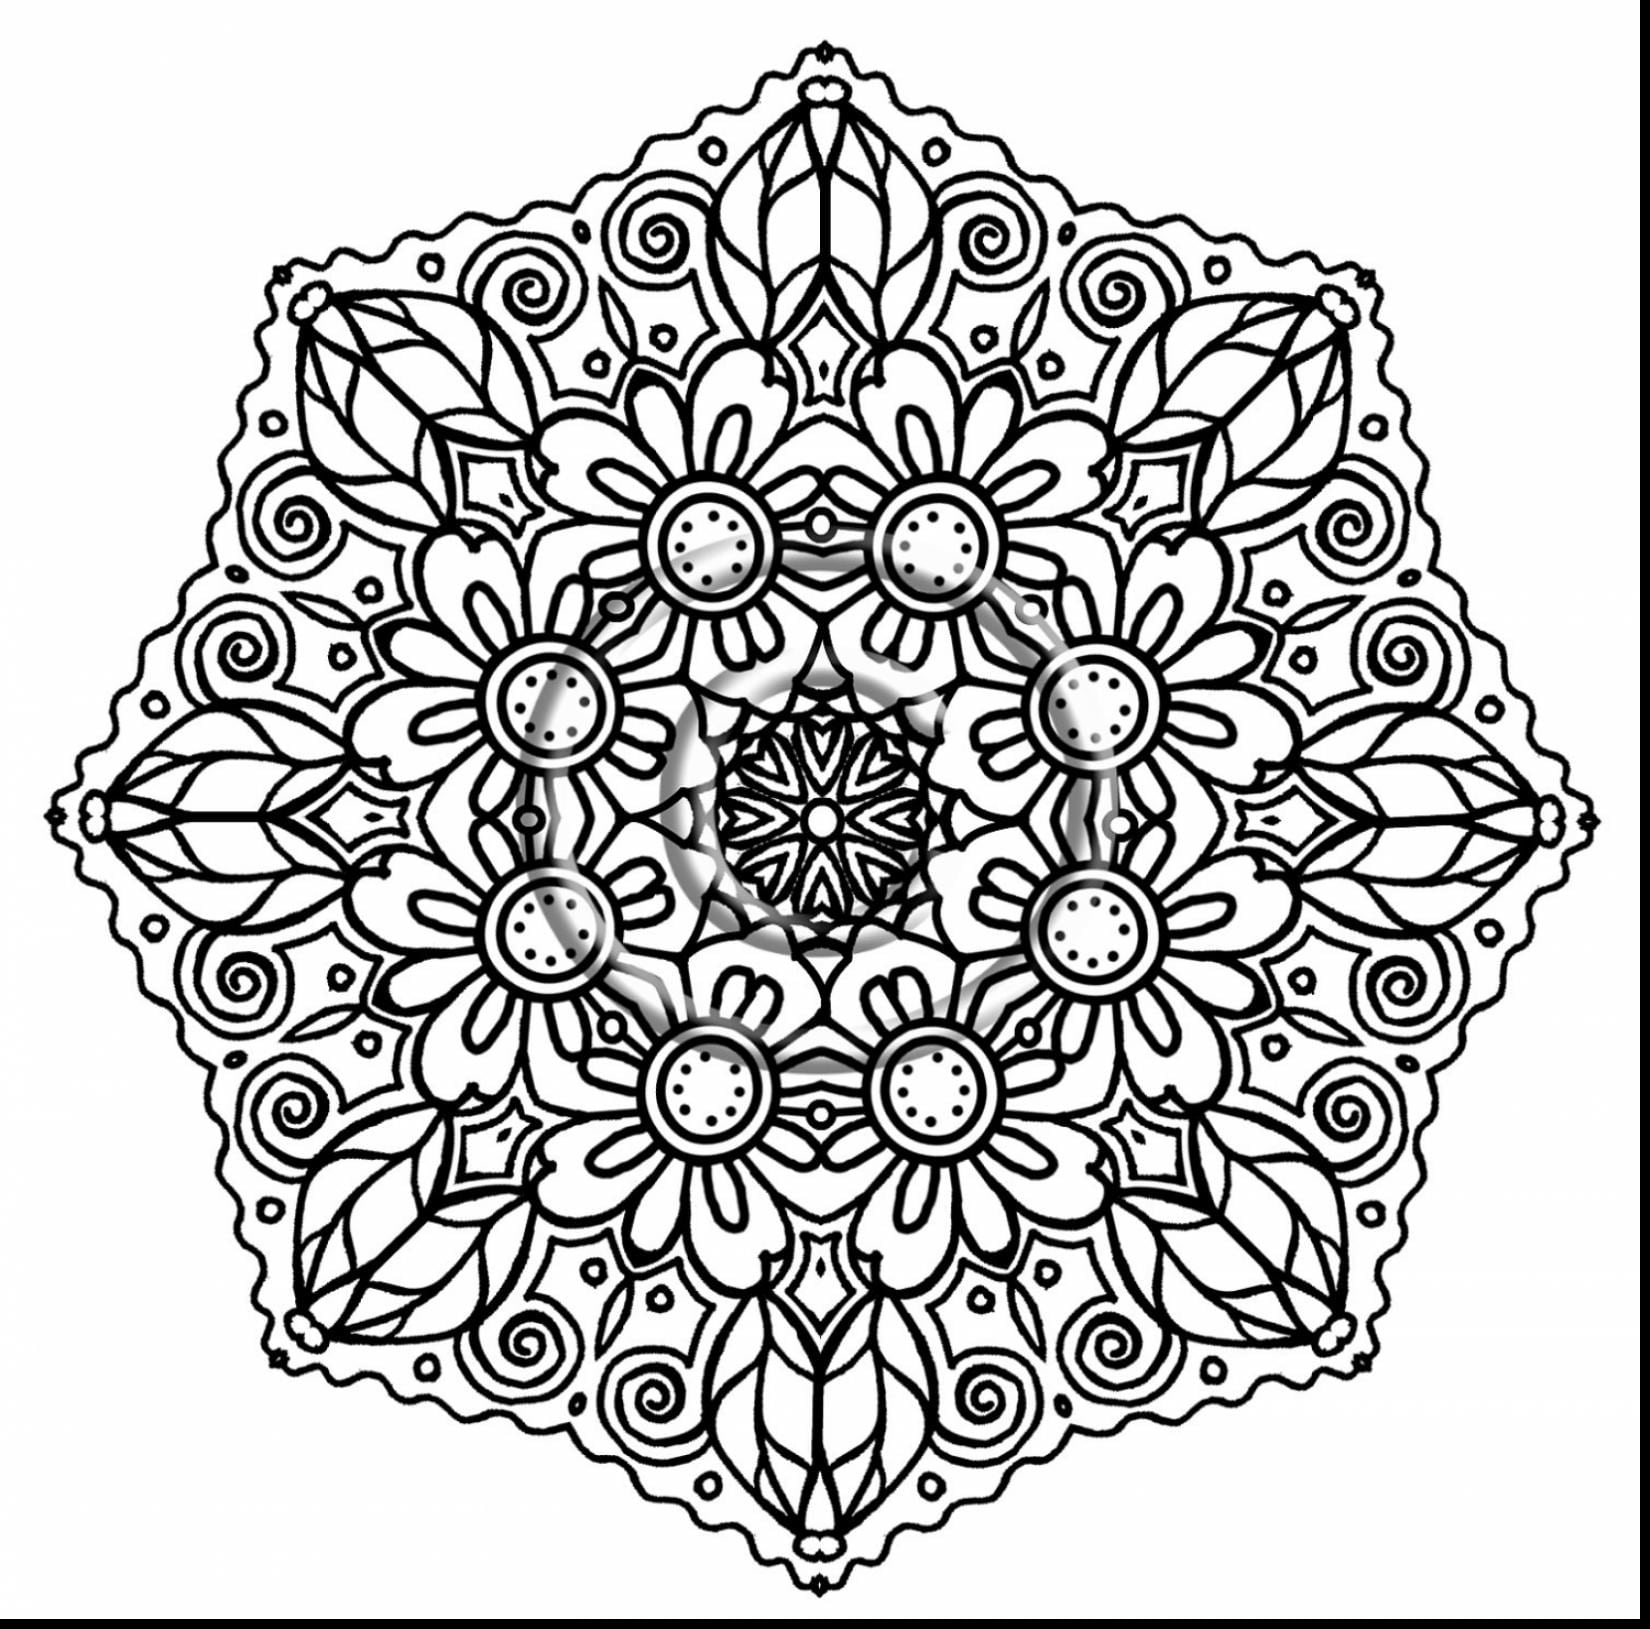 Free Printable Mandala Coloring Pages For Adults 76 With Free